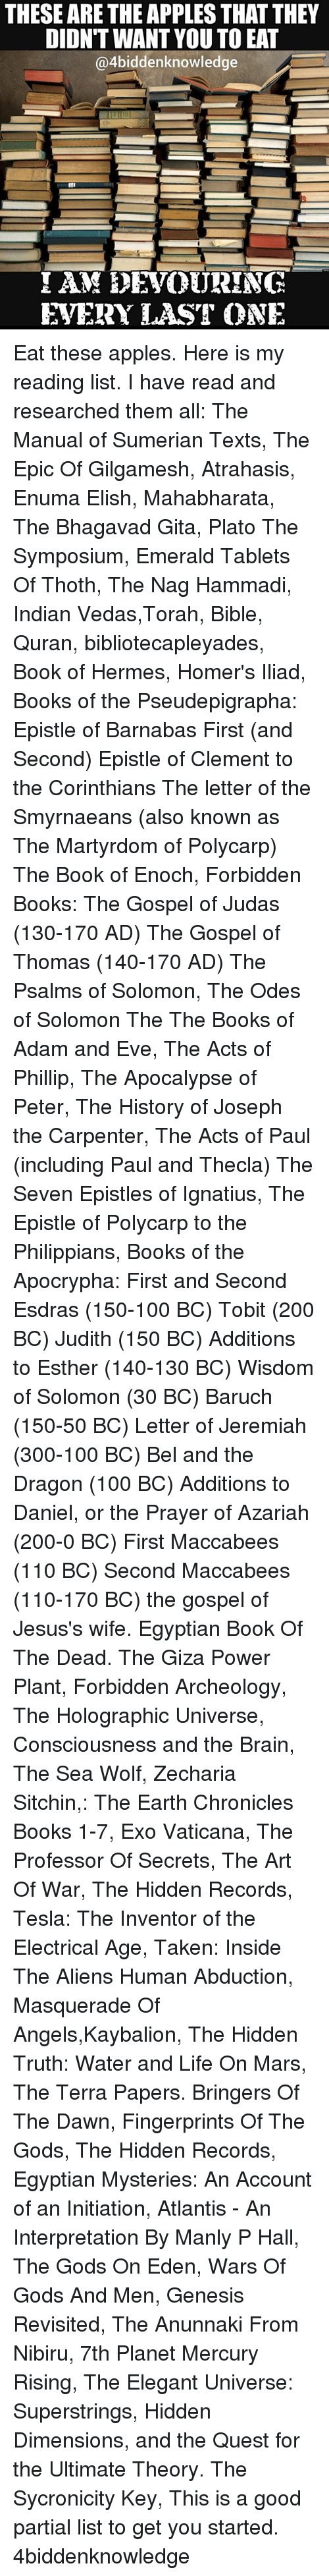 Adam and Eve, Anaconda, and Andrew Bogut: THESE ARE THE APPLES THATTHEY  DIDN'T WANT YOU TOEAT  @4biddenknowledge  AM EDEVOURING  EVERY LAST ONE Eat these apples. Here is my reading list. I have read and researched them all: The Manual of Sumerian Texts, The Epic Of Gilgamesh, Atrahasis, Enuma Elish, Mahabharata, The Bhagavad Gita, Plato The Symposium, Emerald Tablets Of Thoth, The Nag Hammadi, Indian Vedas,Torah, Bible, Quran, bibliotecapleyades, Book of Hermes, Homer's Iliad, Books of the Pseudepigrapha: Epistle of Barnabas First (and Second) Epistle of Clement to the Corinthians The letter of the Smyrnaeans (also known as The Martyrdom of Polycarp) The Book of Enoch, Forbidden Books: The Gospel of Judas (130-170 AD) The Gospel of Thomas (140-170 AD) The Psalms of Solomon, The Odes of Solomon The The Books of Adam and Eve, The Acts of Phillip, The Apocalypse of Peter, The History of Joseph the Carpenter, The Acts of Paul (including Paul and Thecla) The Seven Epistles of Ignatius, The Epistle of Polycarp to the Philippians, Books of the Apocrypha: First and Second Esdras (150-100 BC) Tobit (200 BC) Judith (150 BC) Additions to Esther (140-130 BC) Wisdom of Solomon (30 BC) Baruch (150-50 BC) Letter of Jeremiah (300-100 BC) Bel and the Dragon (100 BC) Additions to Daniel, or the Prayer of Azariah (200-0 BC) First Maccabees (110 BC) Second Maccabees (110-170 BC) the gospel of Jesus's wife. Egyptian Book Of The Dead. The Giza Power Plant, Forbidden Archeology, The Holographic Universe, Consciousness and the Brain, The Sea Wolf, Zecharia Sitchin,: The Earth Chronicles Books 1-7, Exo Vaticana, The Professor Of Secrets, The Art Of War, The Hidden Records, Tesla: The Inventor of the Electrical Age, Taken: Inside The Aliens Human Abduction, Masquerade Of Angels,Kaybalion, The Hidden Truth: Water and Life On Mars, The Terra Papers. Bringers Of The Dawn, Fingerprints Of The Gods, The Hidden Records, Egyptian Mysteries: An Account of an Initiation, Atlantis - An Interpretation By Manly P Hall, The Gods On Eden, Wars Of Gods And Men, Genesis Revisited, The Anunnaki From Nibiru, 7th Planet Mercury Rising, The Elegant Universe: Superstrings, Hidden Dimensions, and the Quest for the Ultimate Theory. The Sycronicity Key, This is a good partial list to get you started. 4biddenknowledge